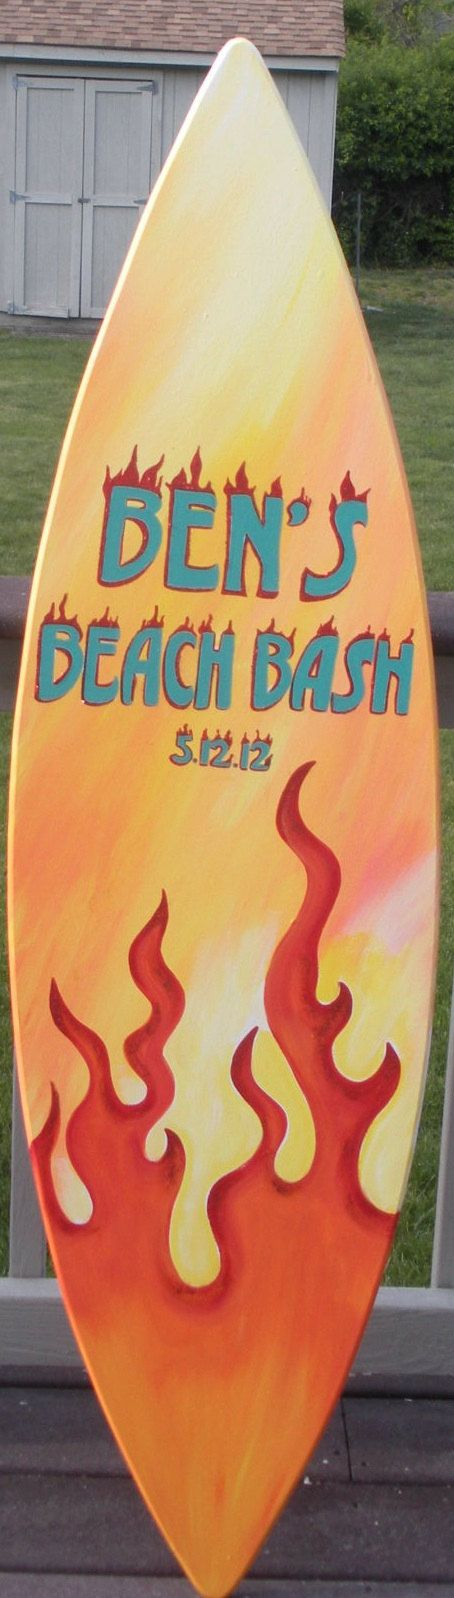 5ft decorative surfboard surf beach wood wall art sign personalized ...